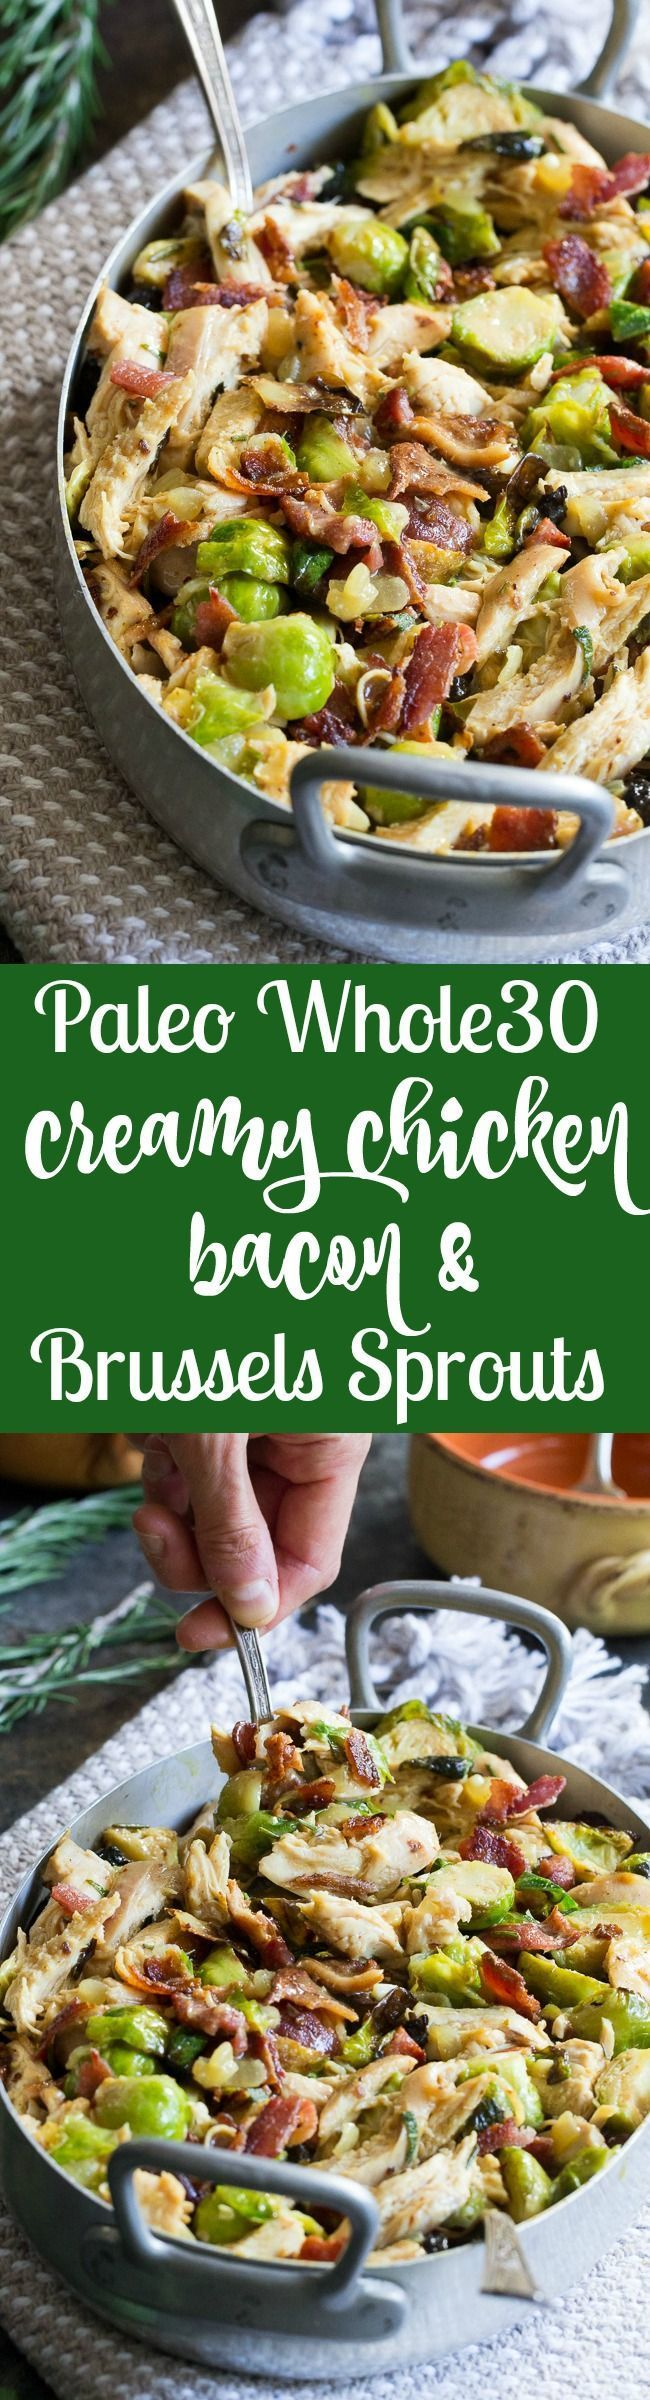 Roasted chicken brussels sprouts and crispy bacon are tossed together and baked in a creamy dairy free sauce for a super comforting, delicious and filling Whole30, paleo, and low carb meal.